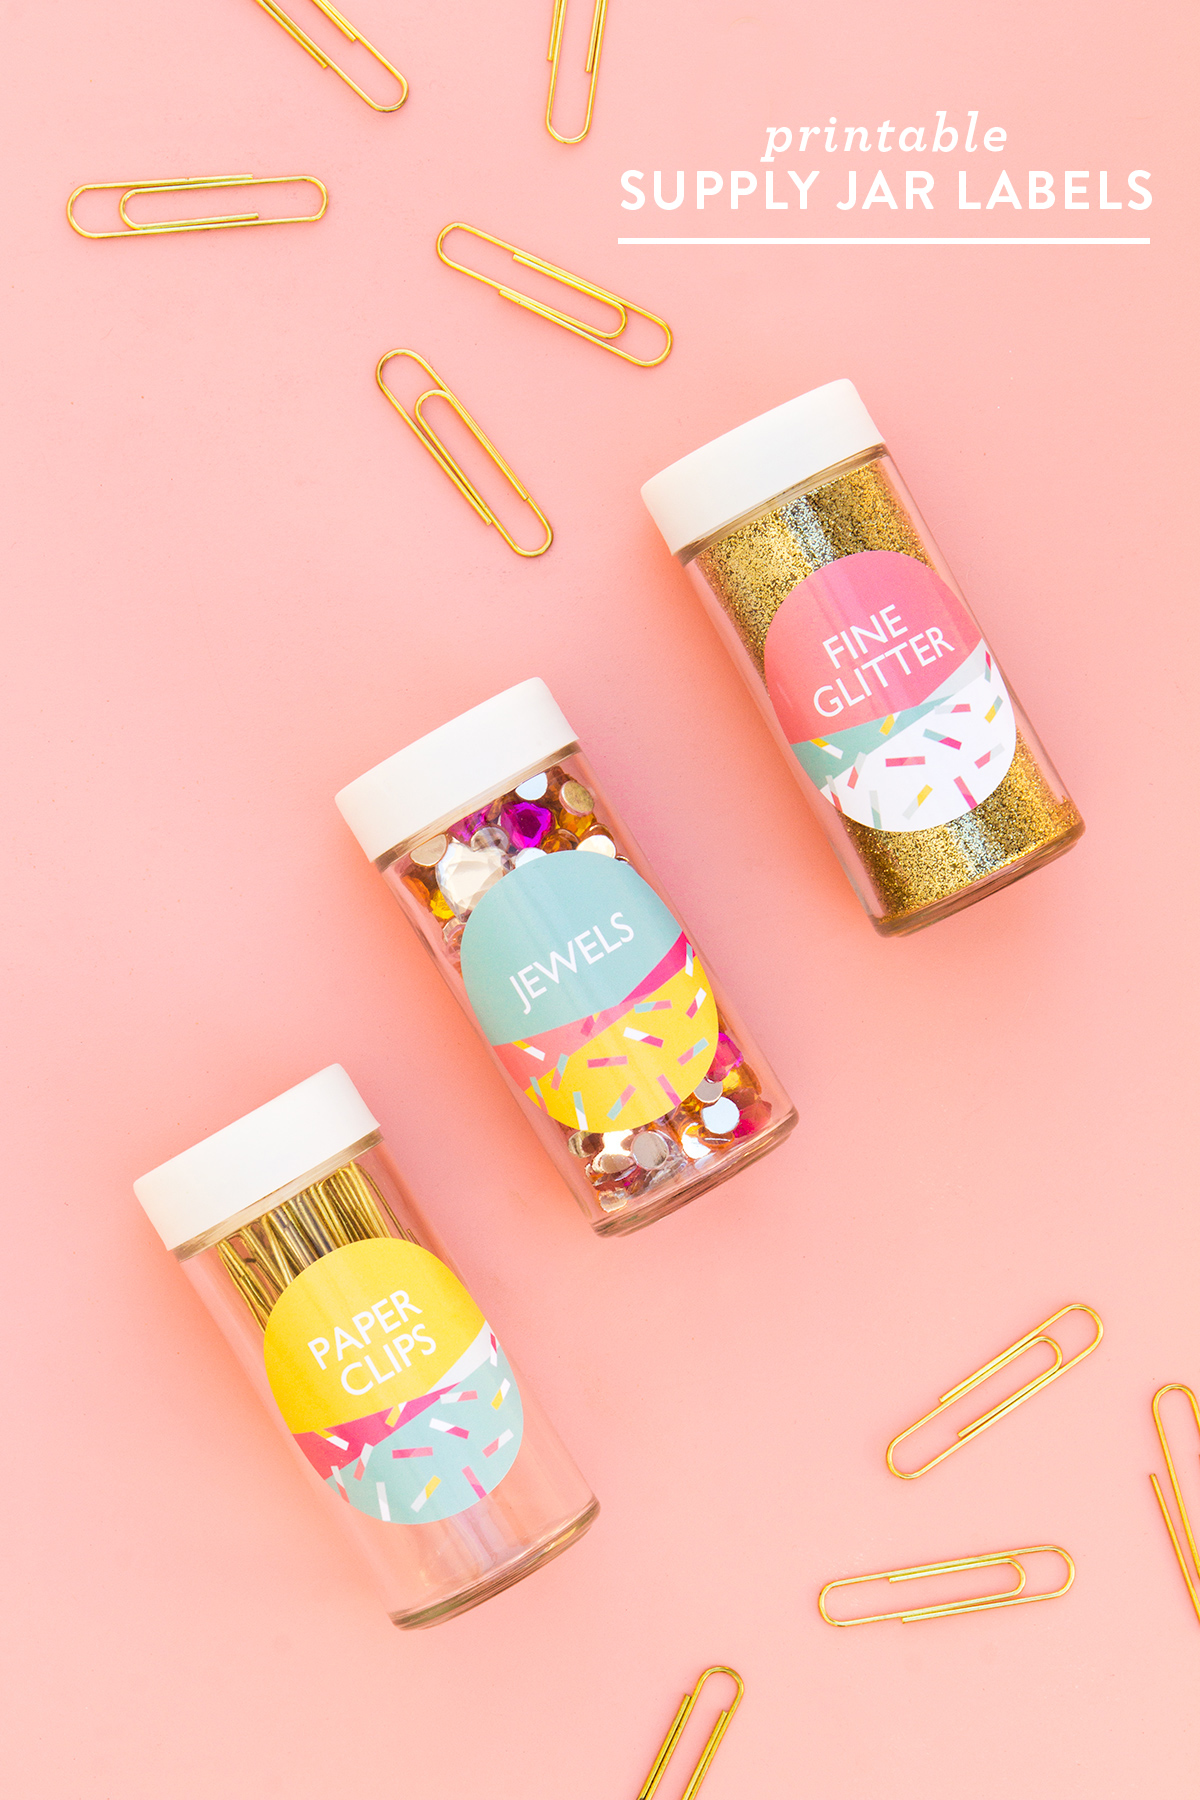 Spice jars aren't just for spices, use them with these colorful @avery labels to organize your office or craft supplies.